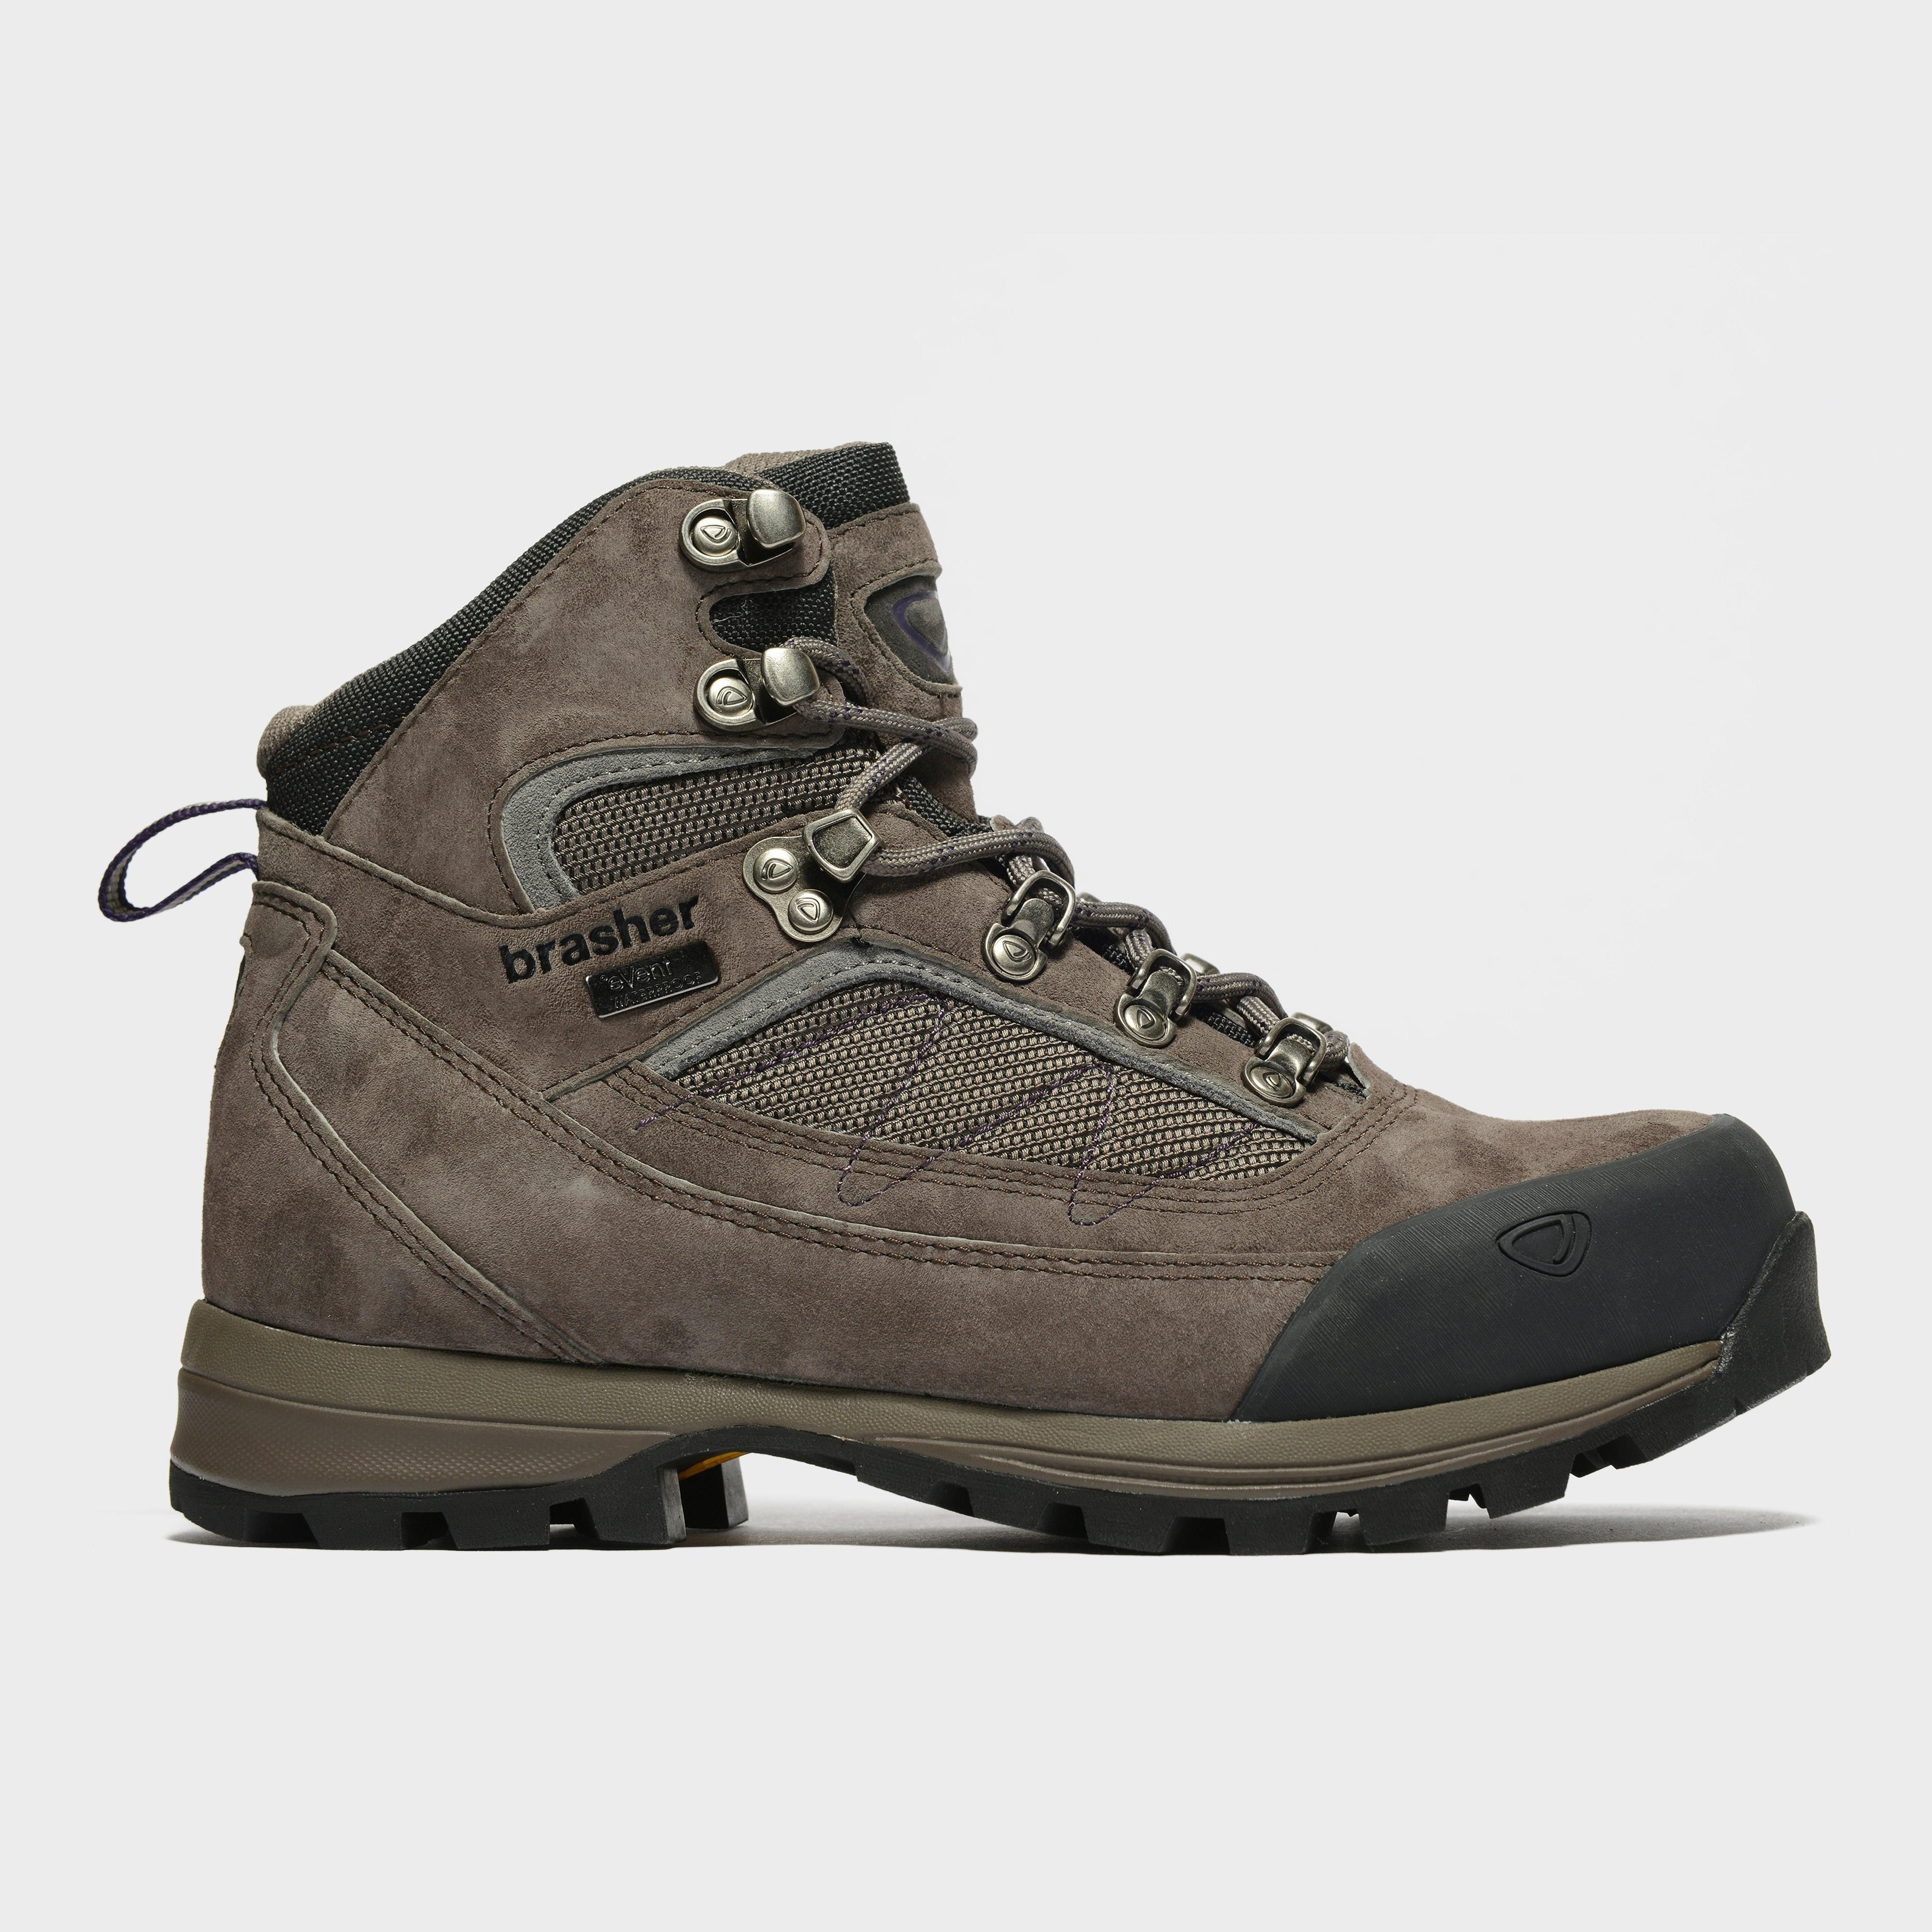 Boots, Leather boots women, Hiking boots